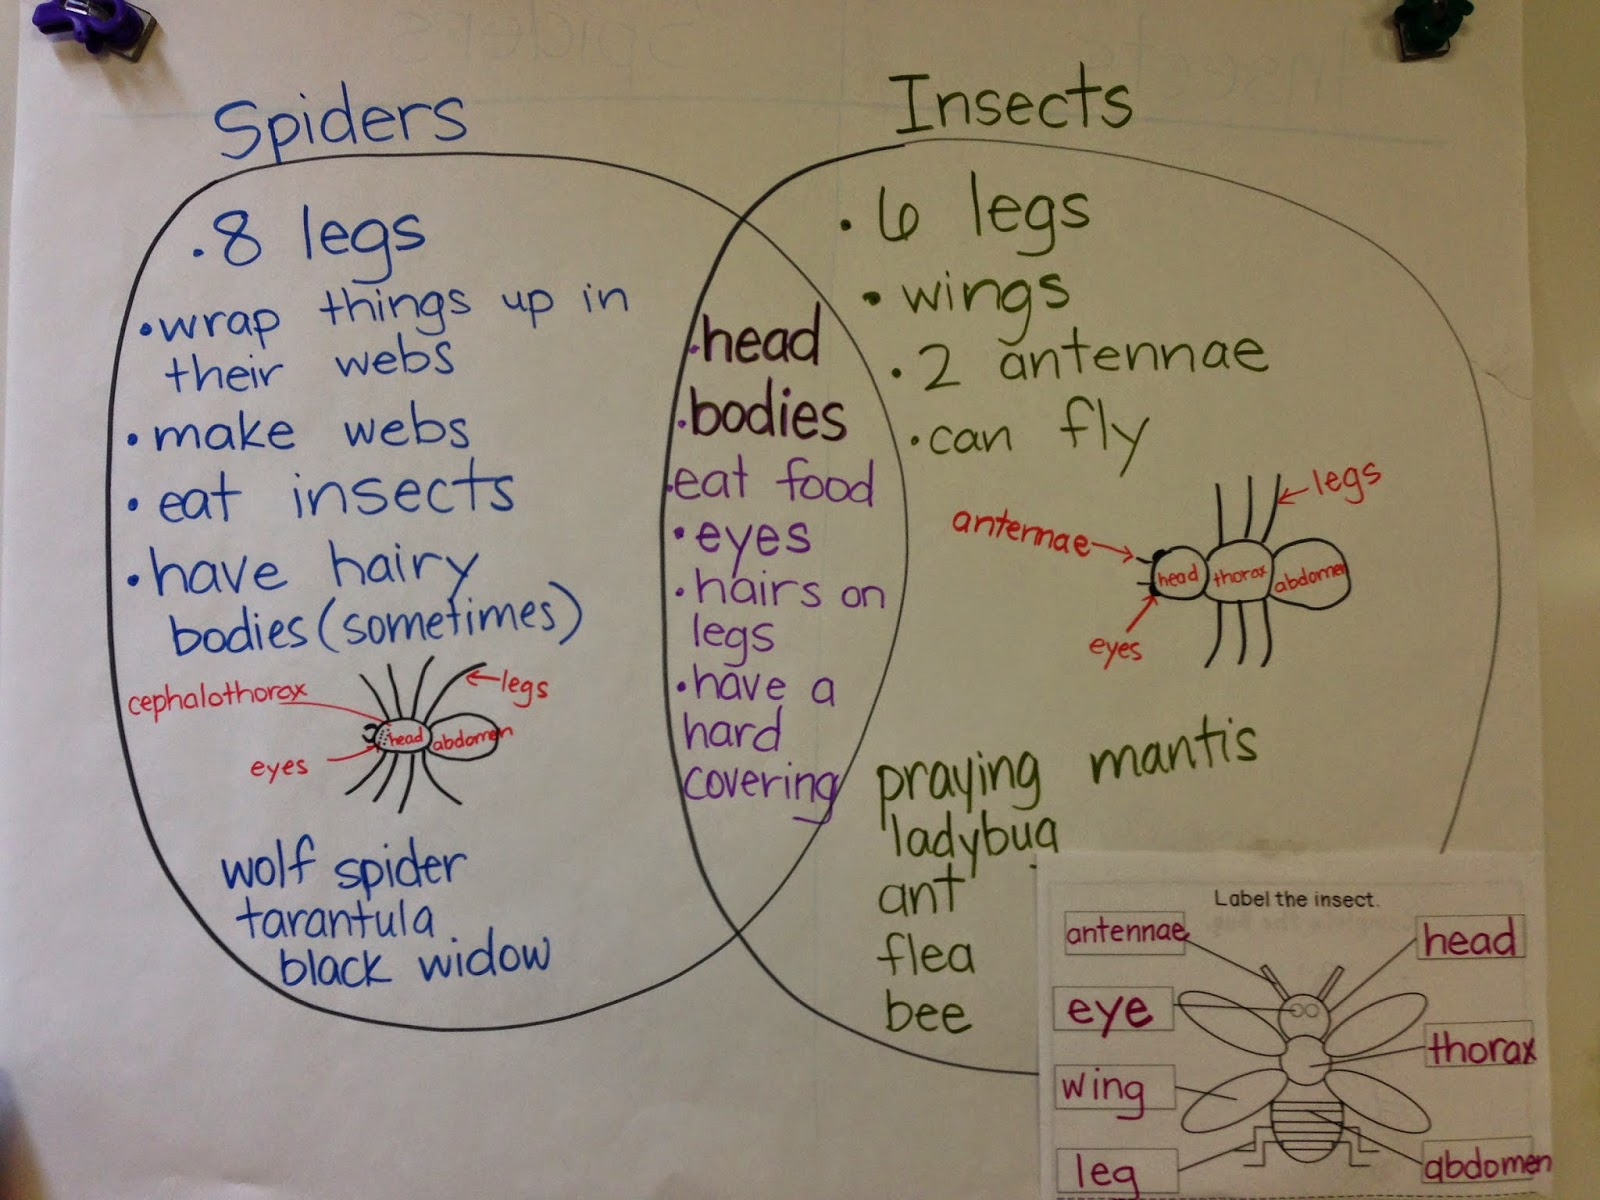 Venn diagram on bugs online schematic diagram tons of fun with k and 1 playing with insects and spiders rh tonsoffunwithkand1 blogspot com venn diagram on day of the dead and halloween venn diagram ccuart